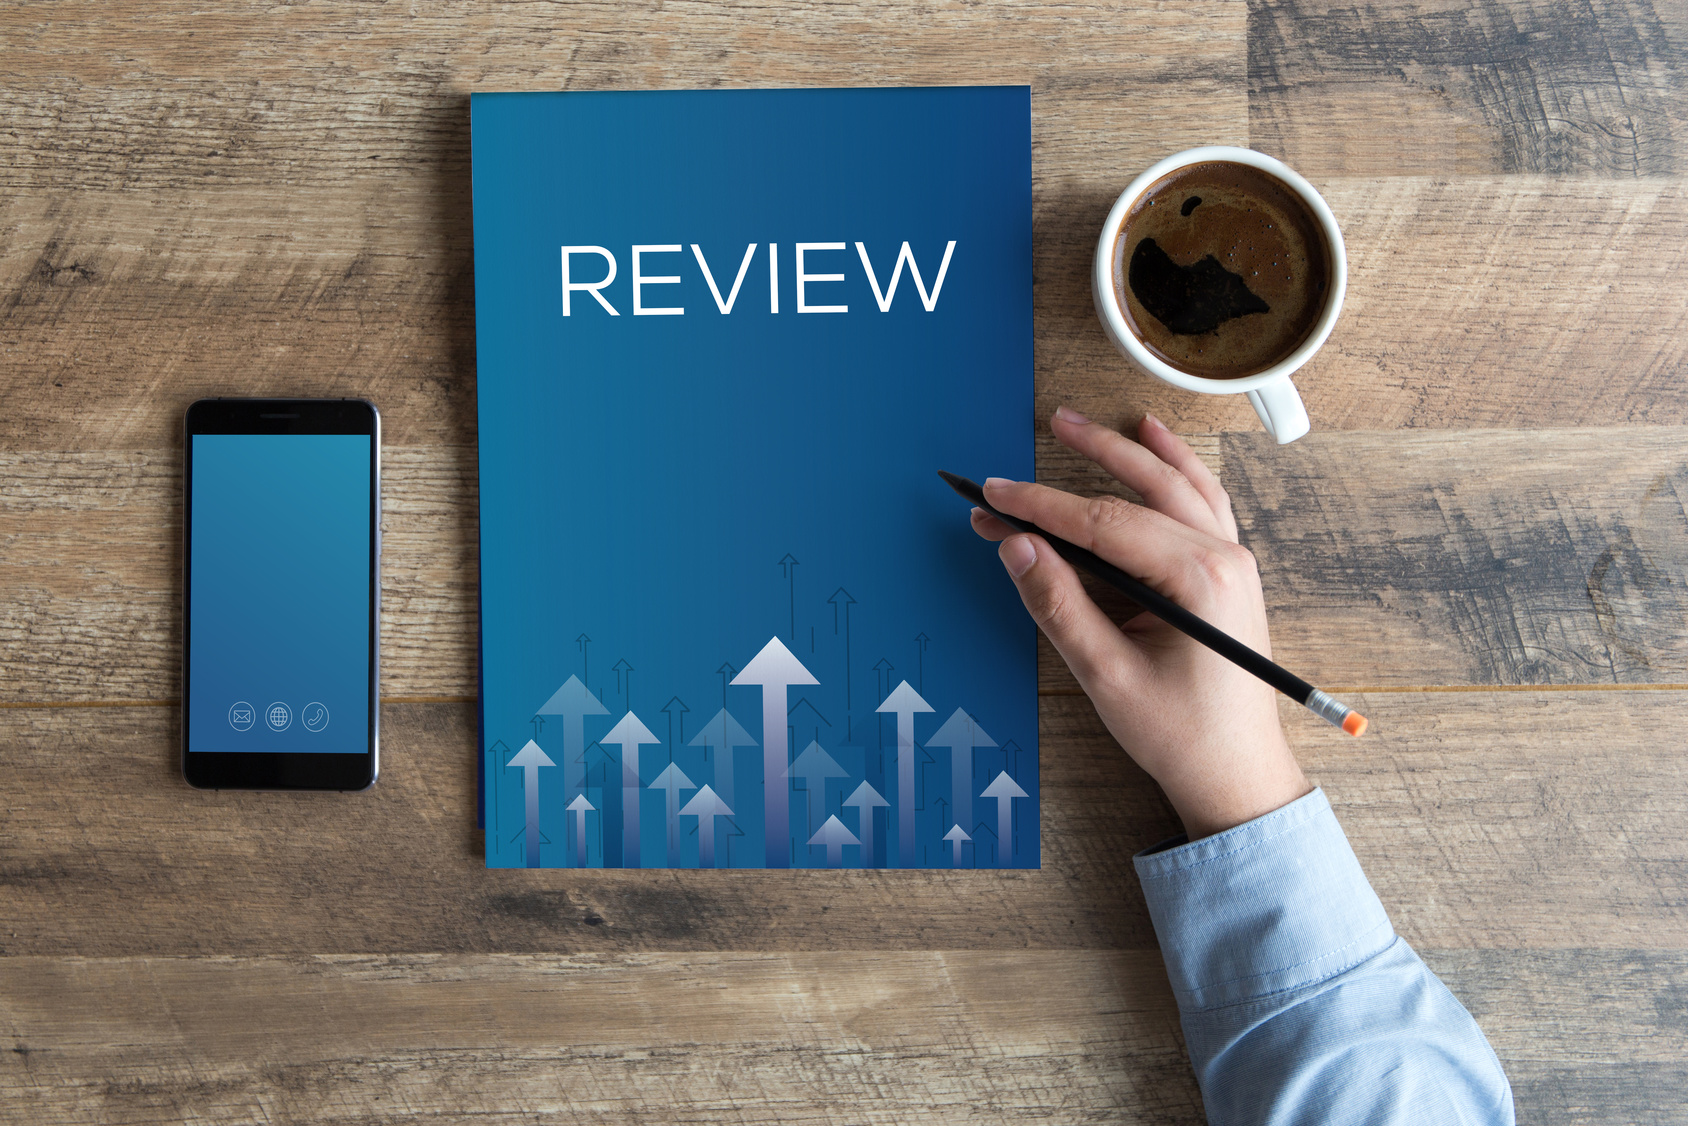 Richmond ServiceDesk v13 gets thumbs up from independent review